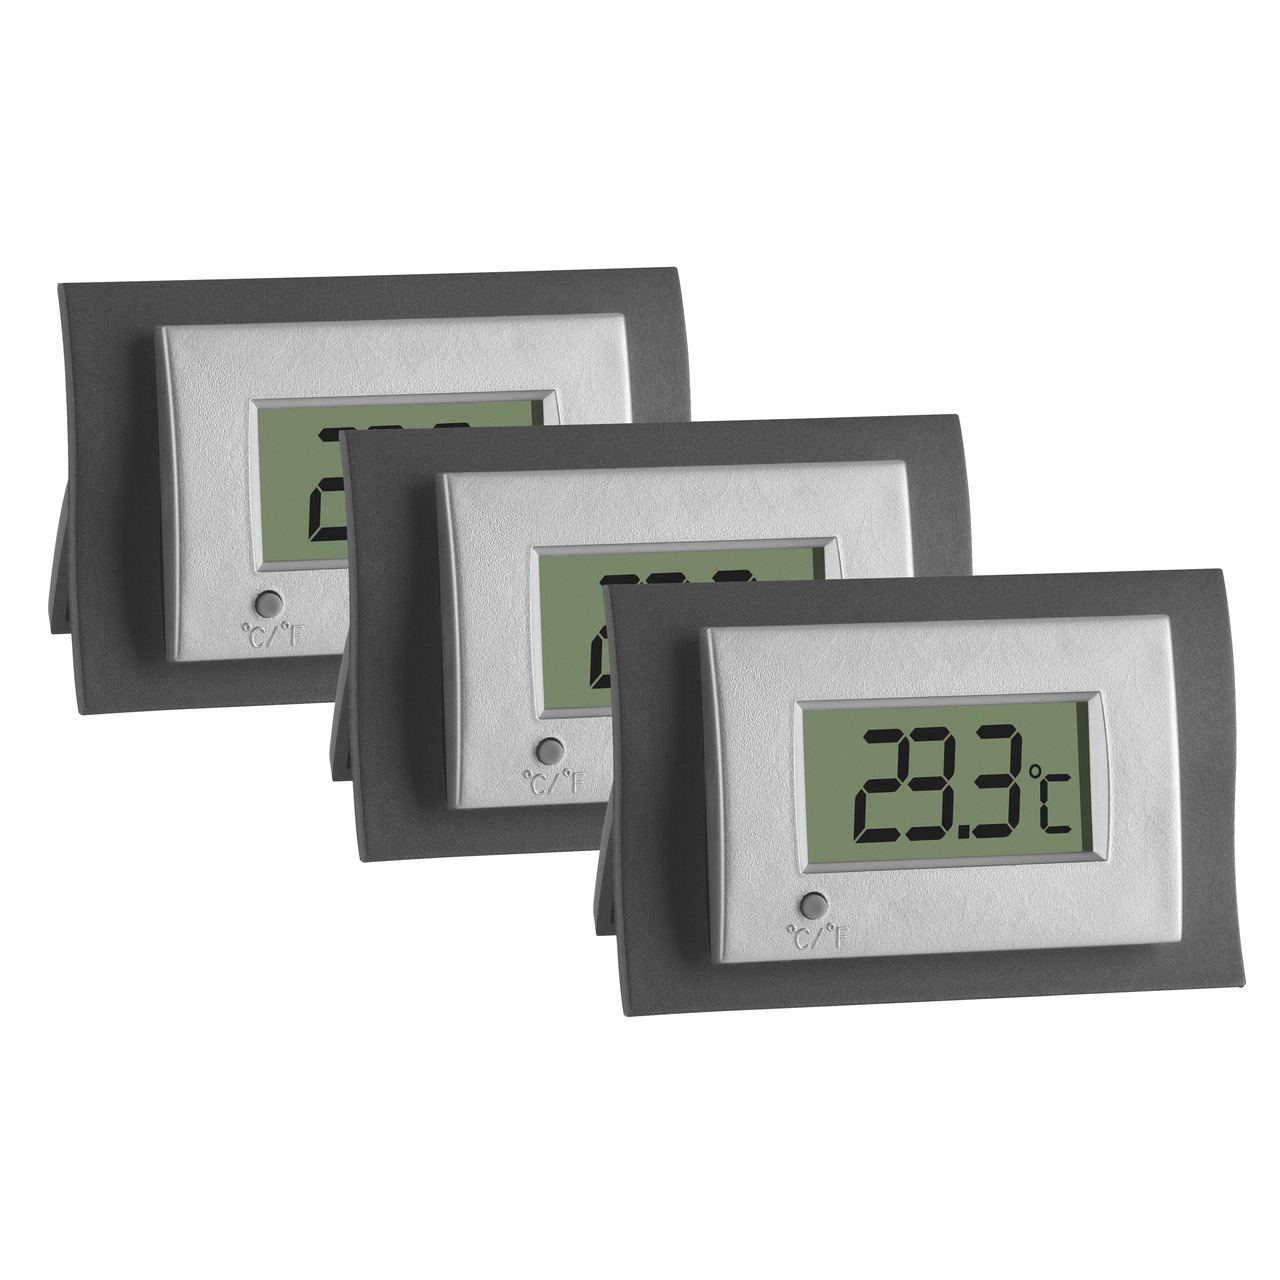 TFA Digital-Thermometer- 3er Set